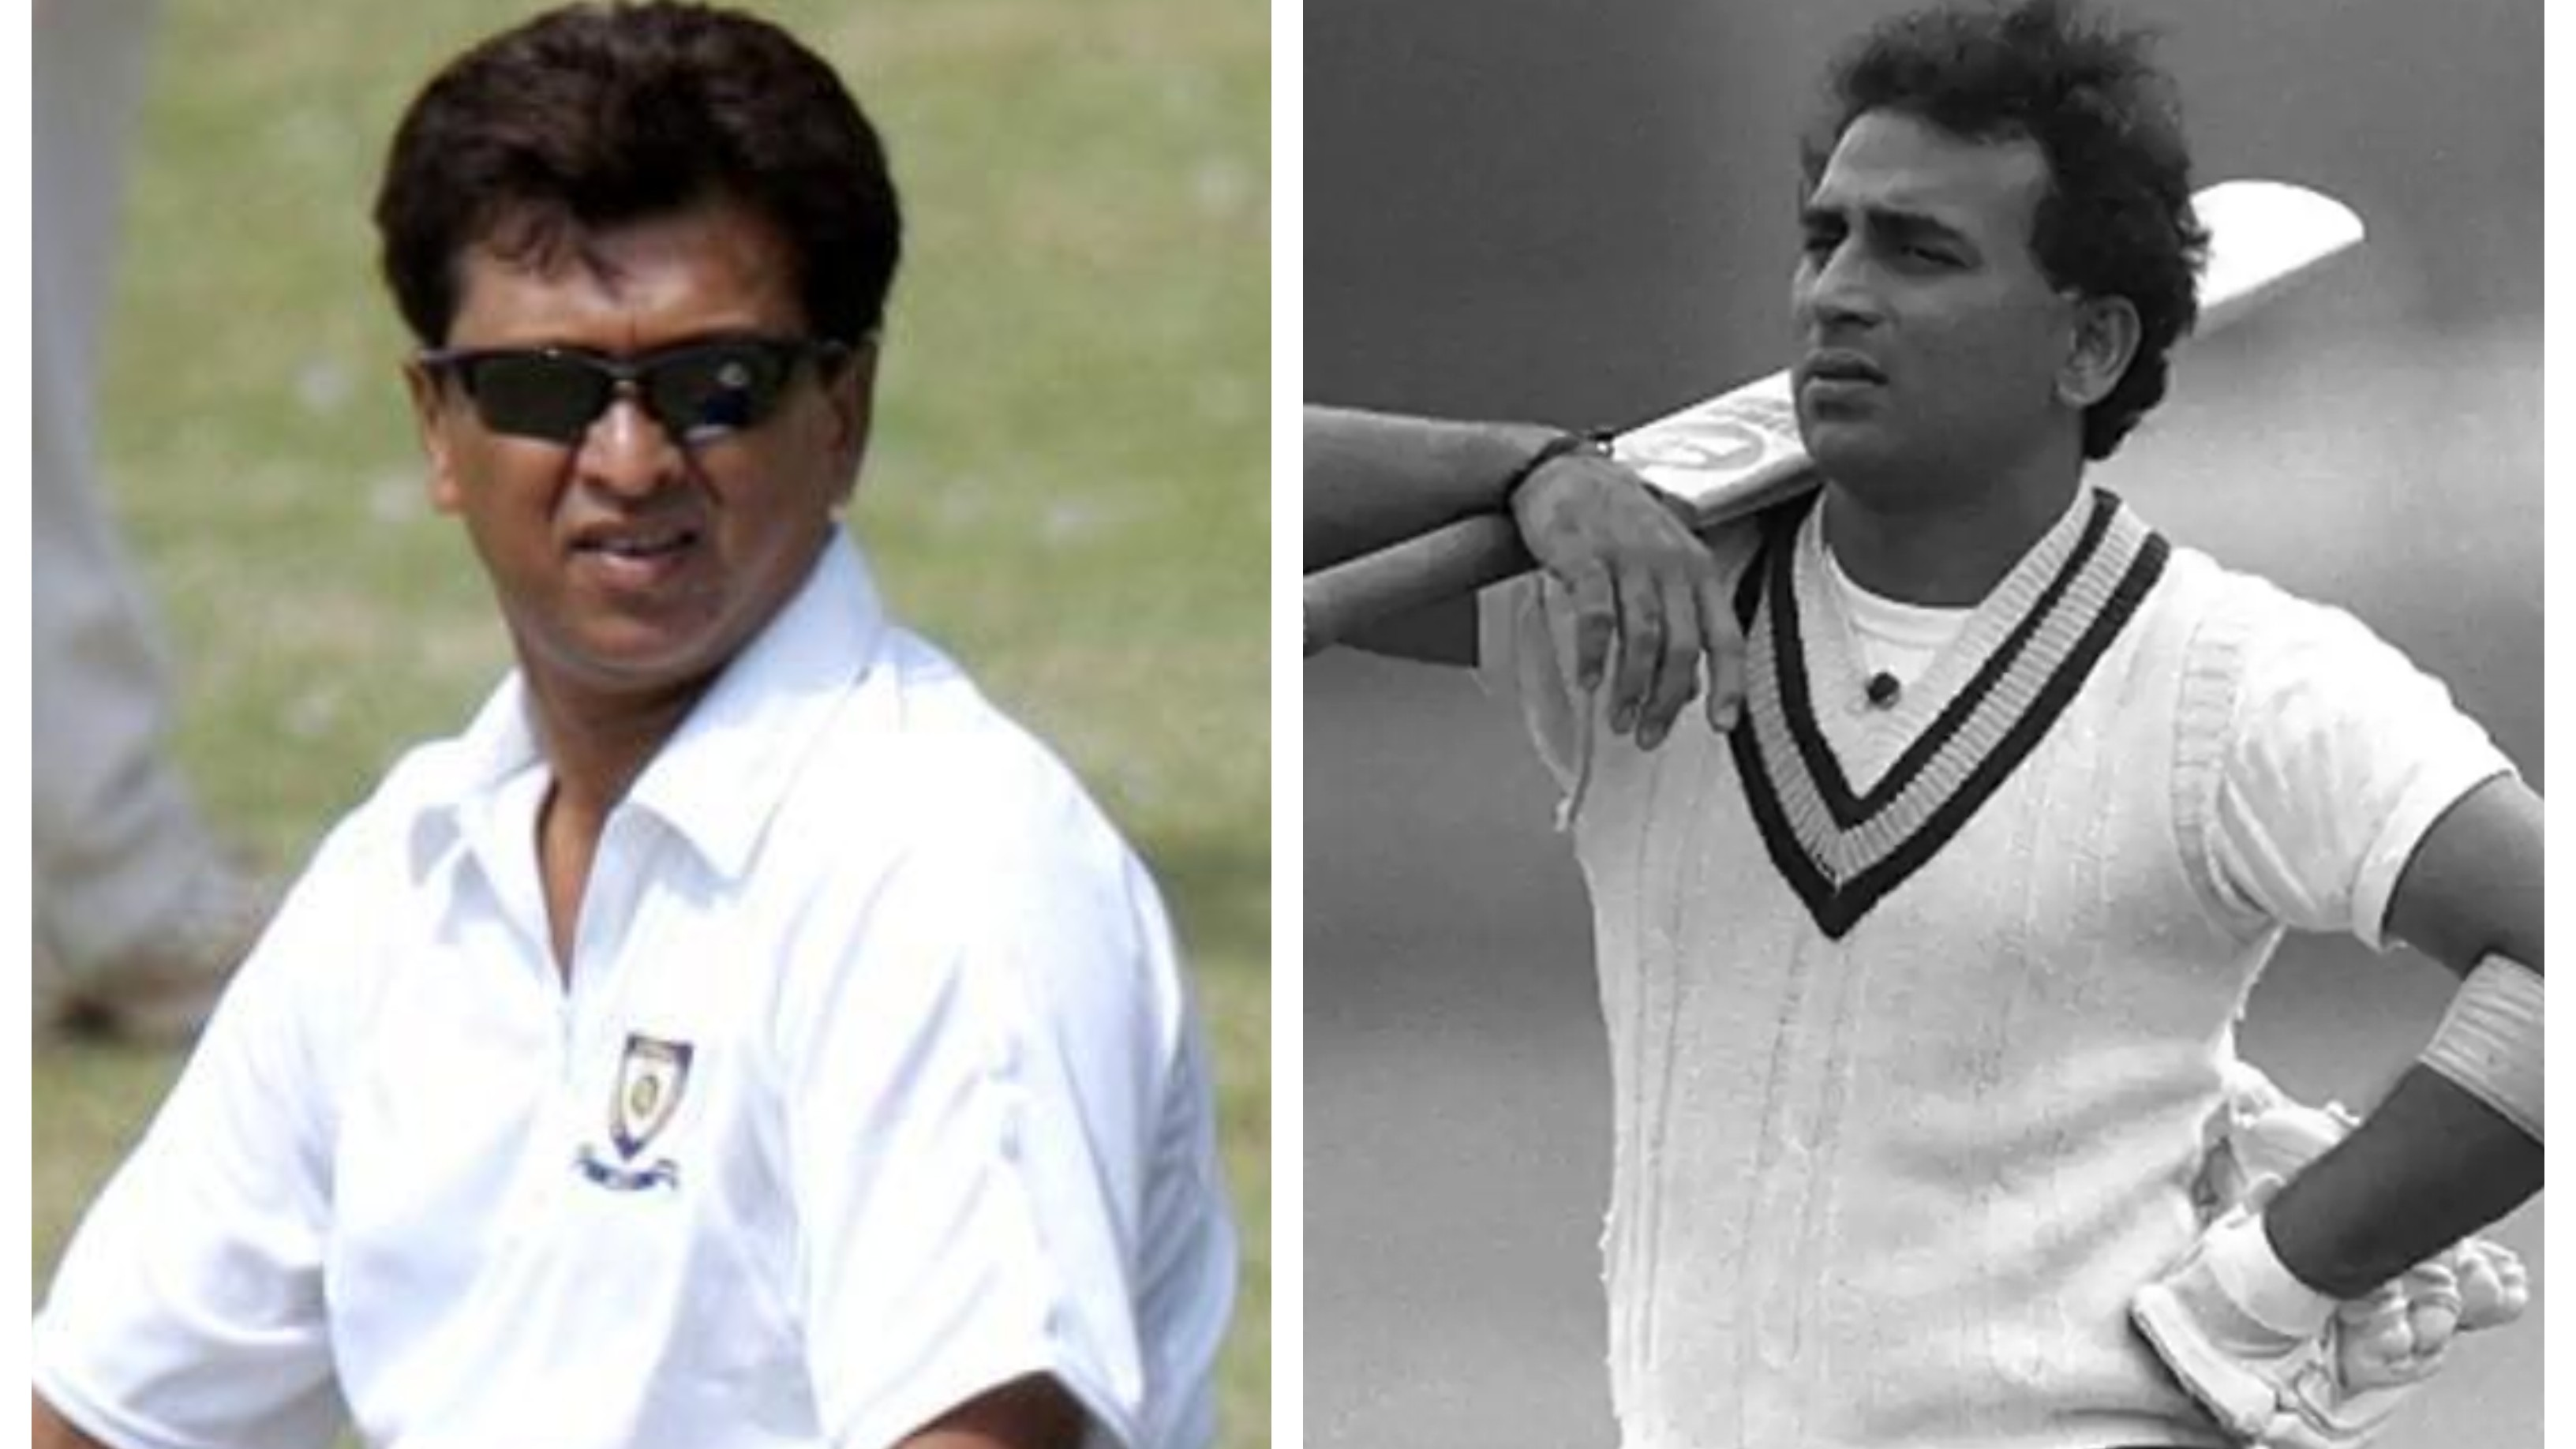 'He was one of the worst players I've ever seen in nets': Kiran More on Sunil Gavaskar